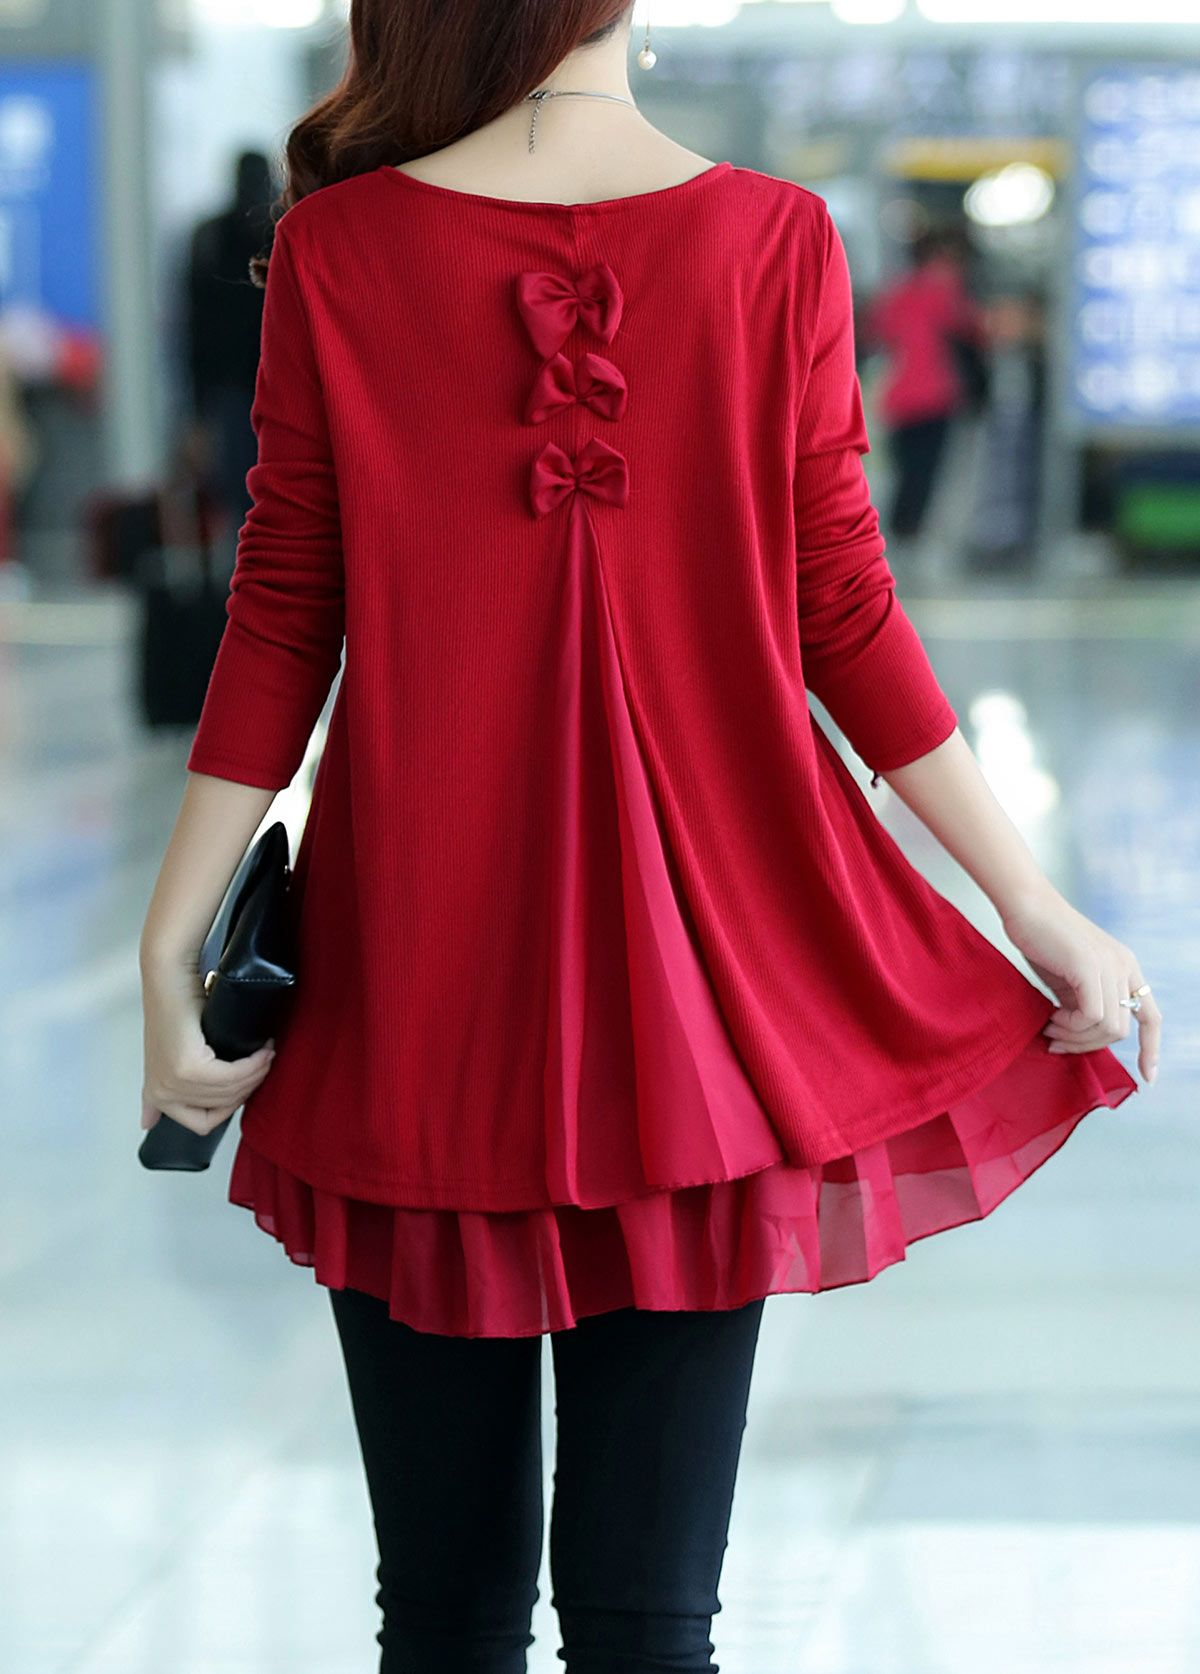 Bowknot Decorated Long Sleeve Chiffon Panel Sweater | Clothes and ...